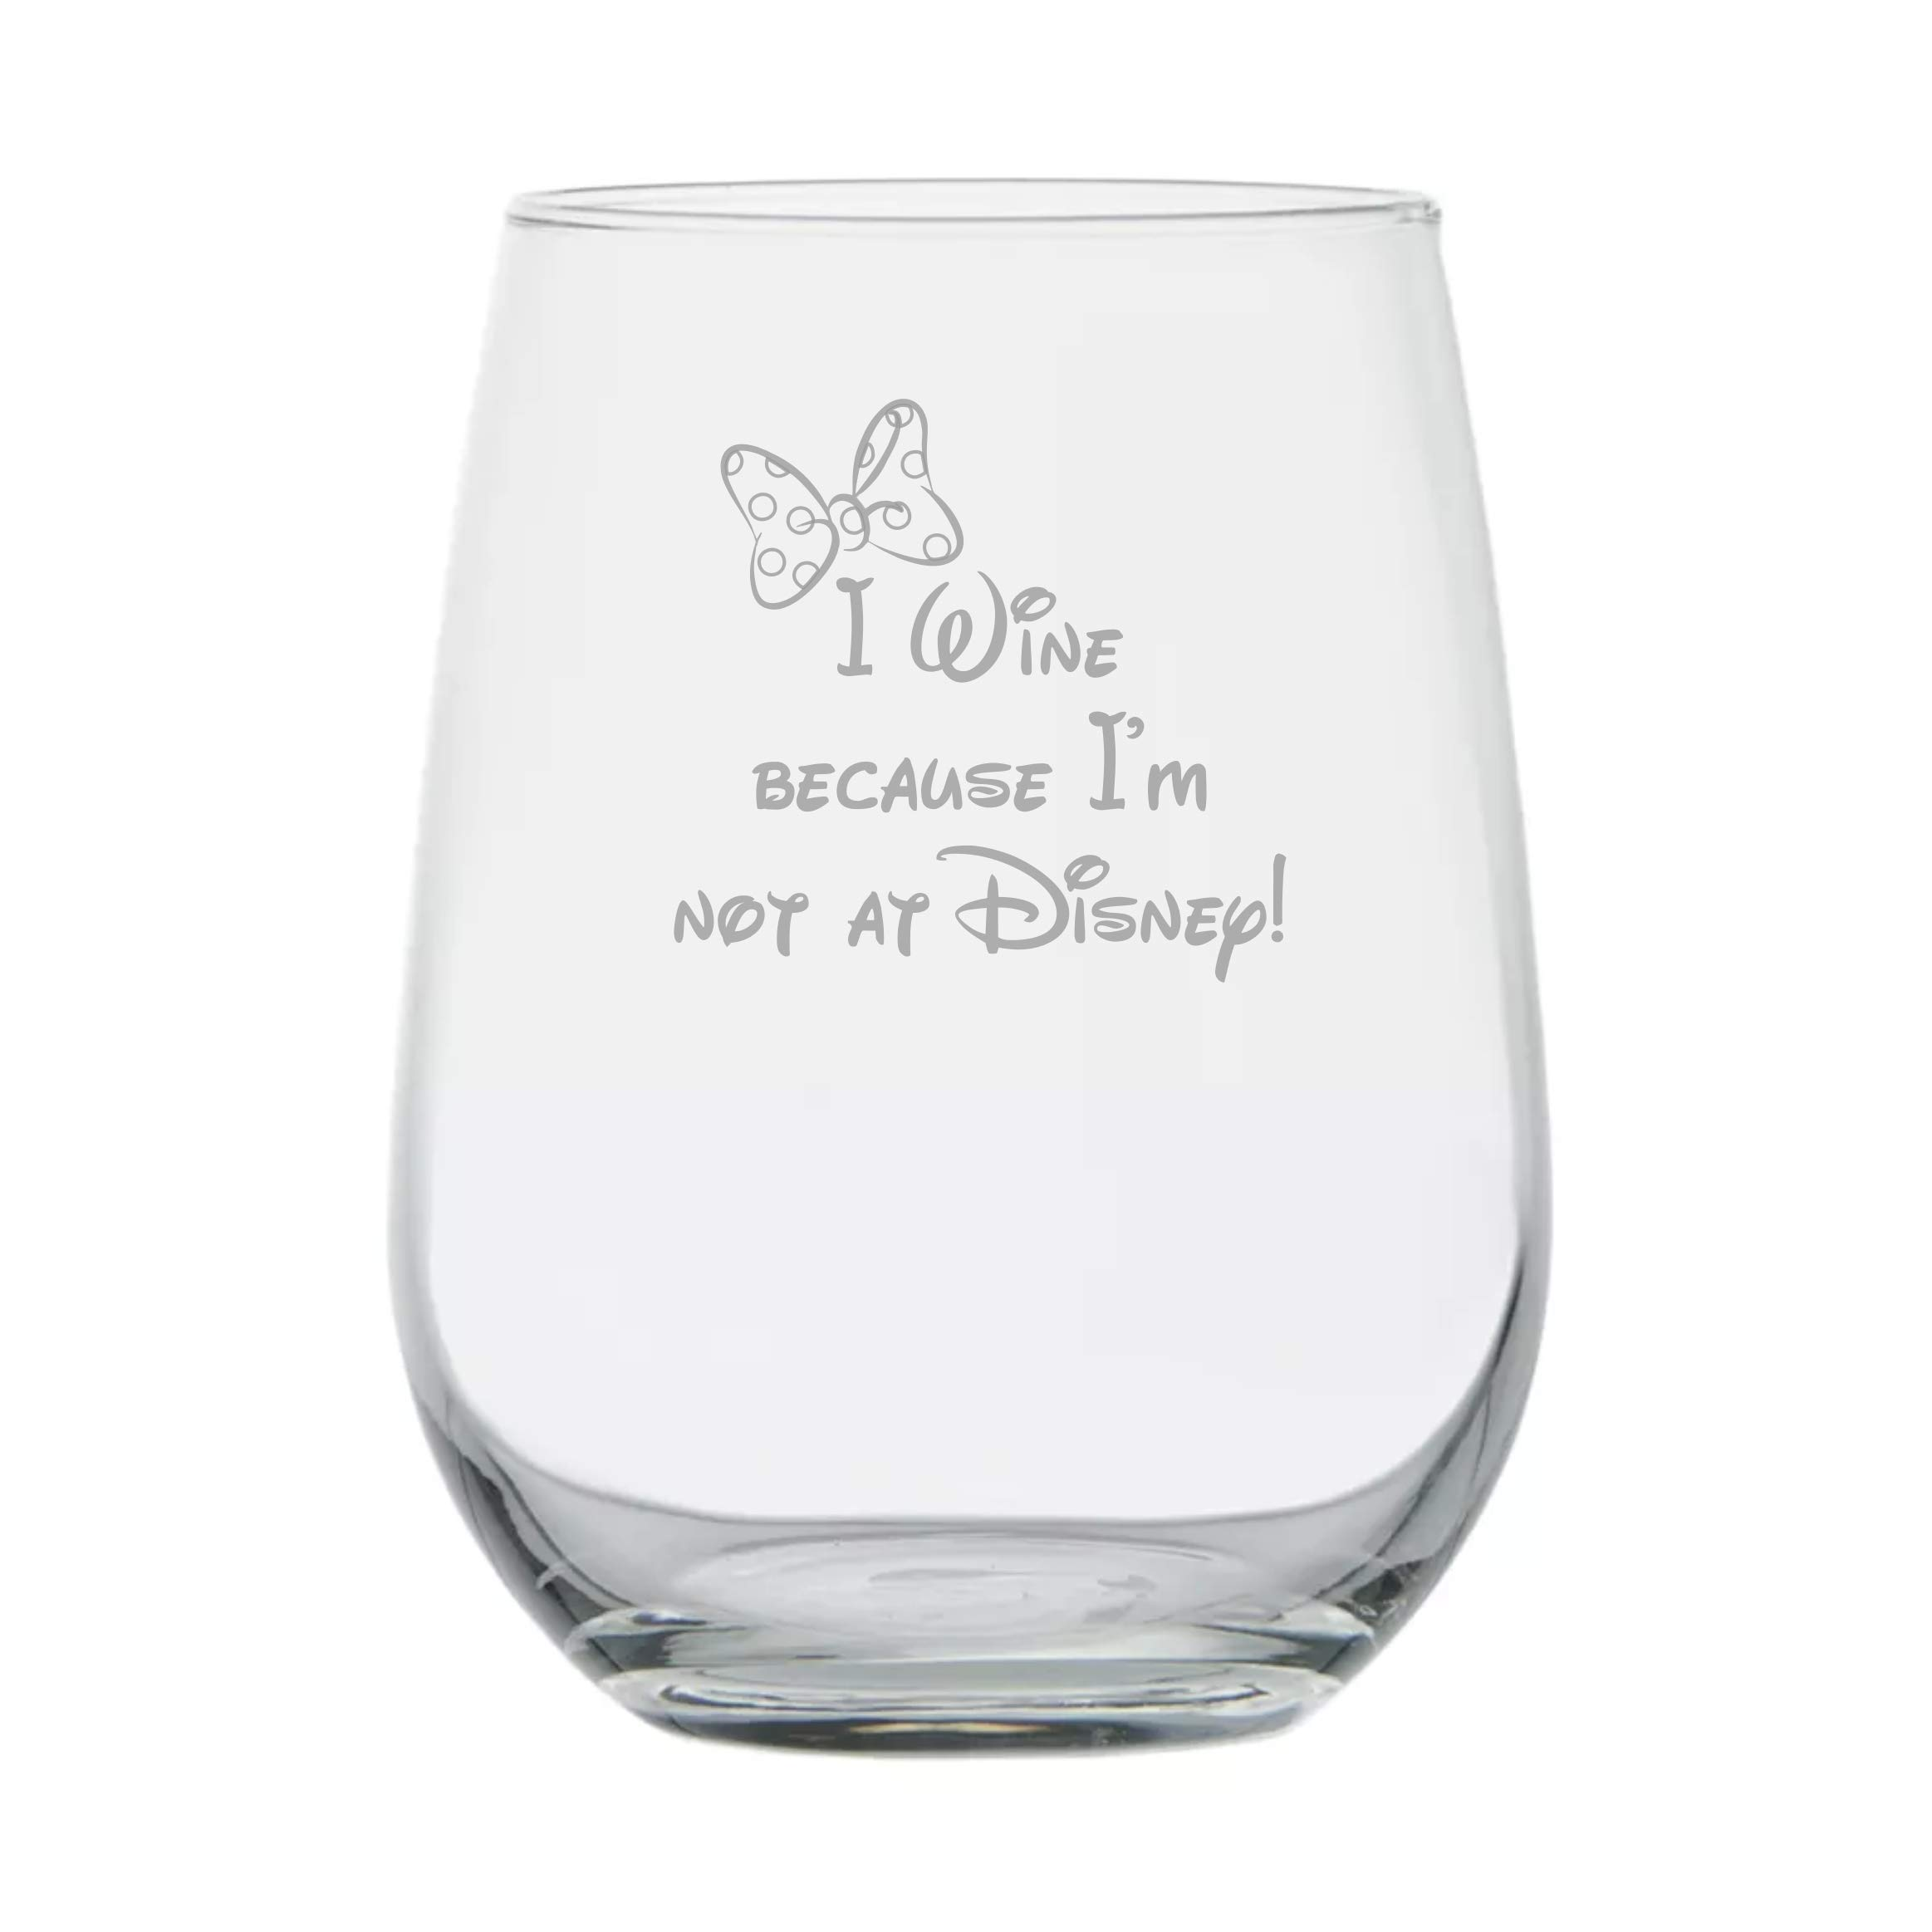 I Wine because Im not at Disney ★ 17 oz Dishwasher Safe ★ Minnie Mouse Inspired Wine Gift ★ Disney Wine Gifts ★ Gift for Women ★ Mom ★ Birthday Glass ★ Disney Gifts ★ Couples Anniversary